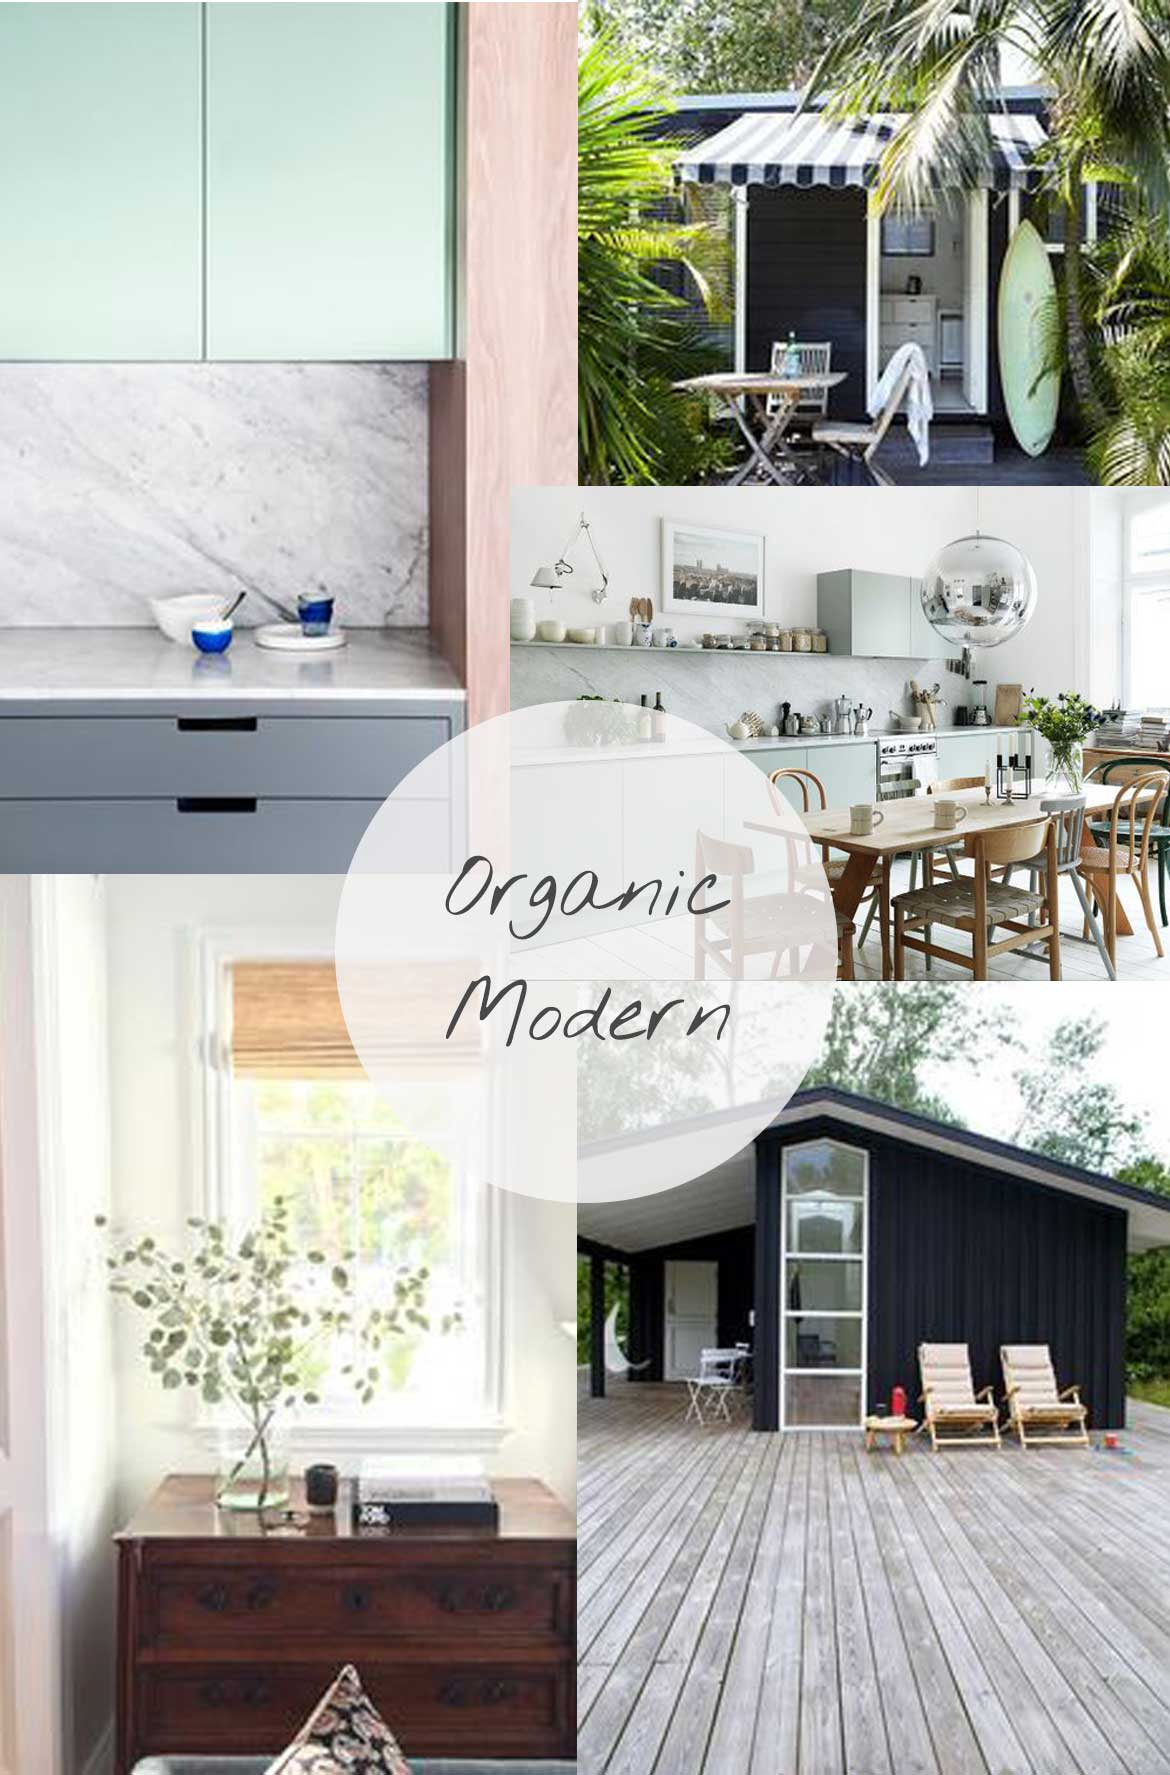 Organic Modern Decor | Mixing natural elements like wood, marble and greenery on a background on clean white. For me, organic modern also means adding warmth and patina with the use of vintage wooden furniture.